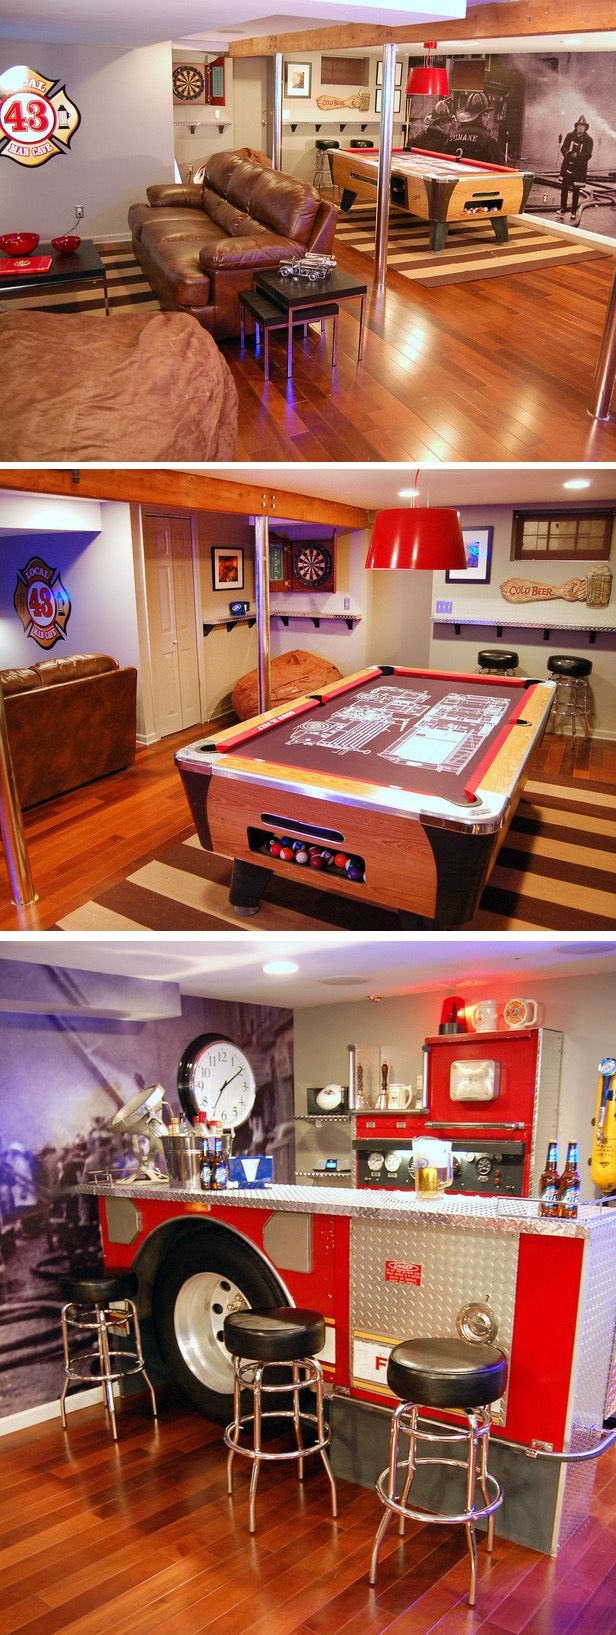 Fireman's Pub-Themed Man Cave (with fire scene wall mural, fire pole support beams, a custom fire engine design pool table and converted fire truck bar) | Shared by LION